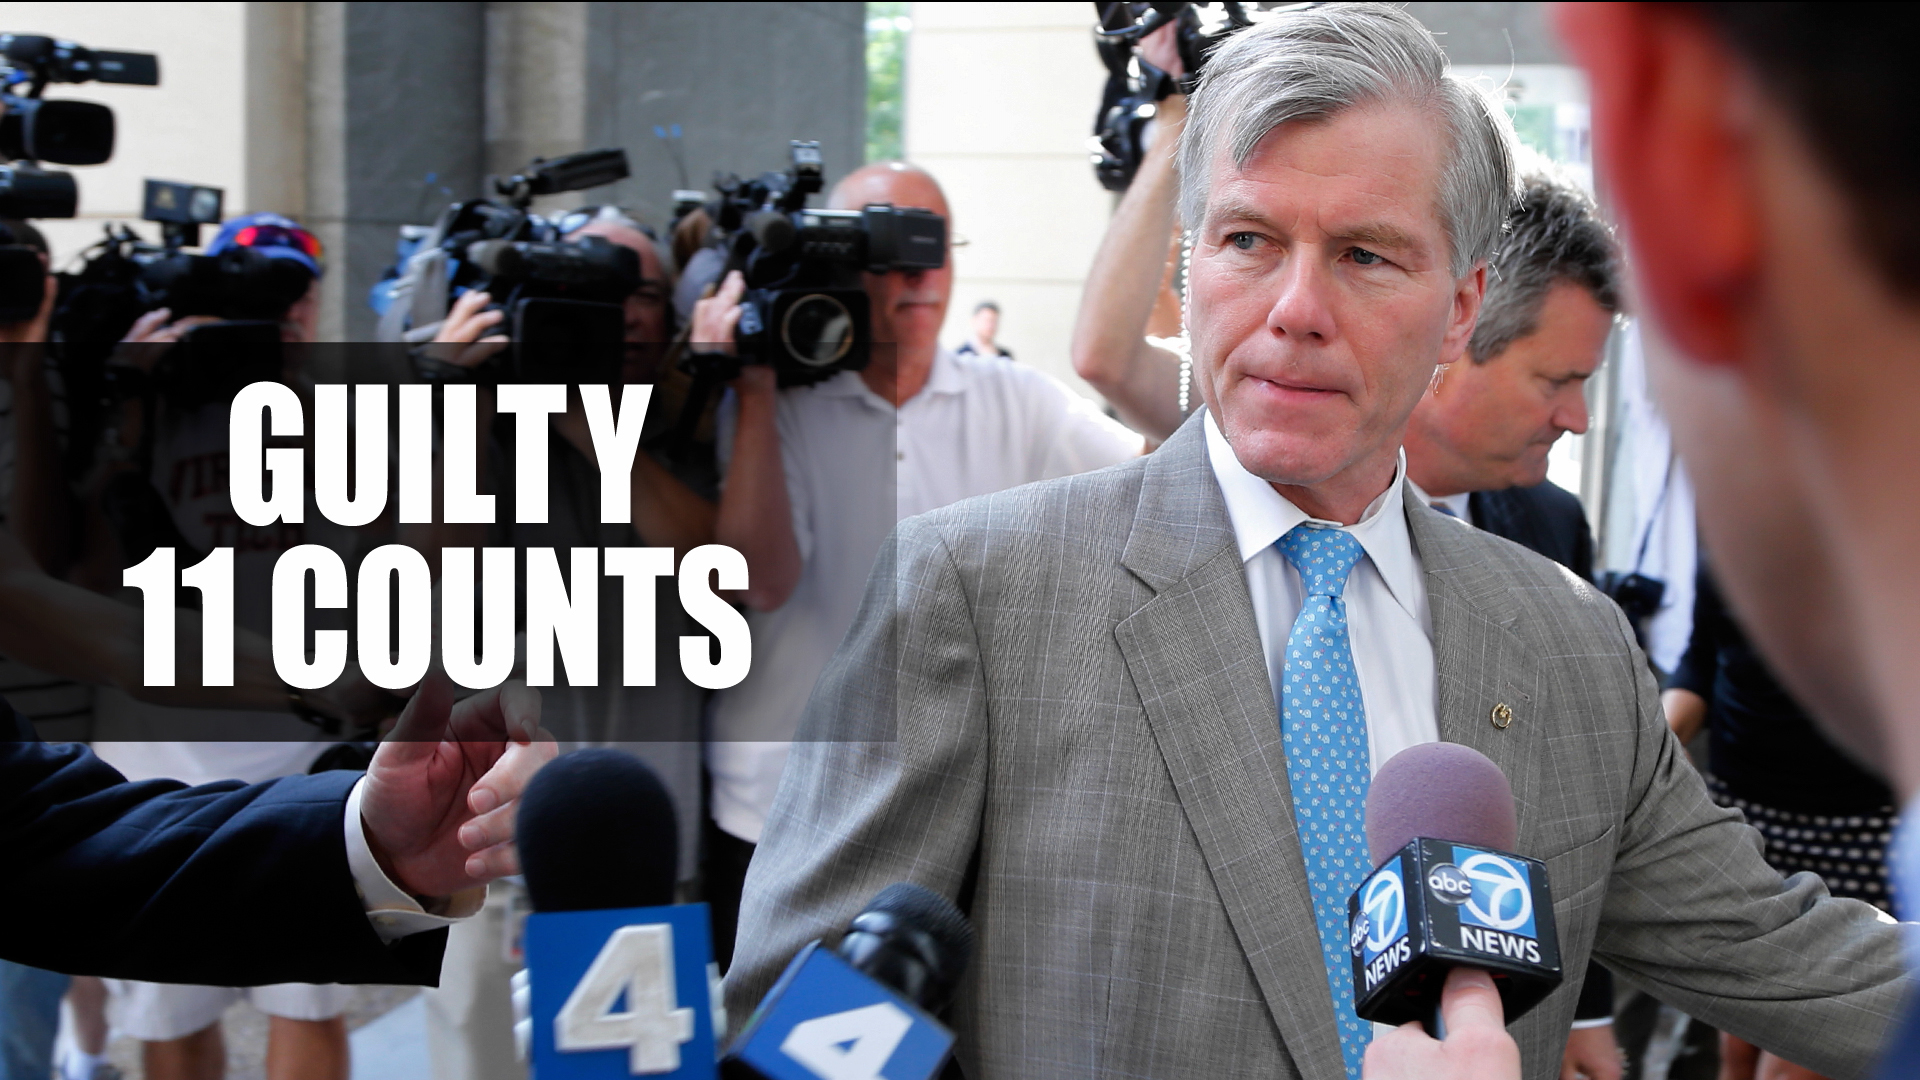 McDonnell found guilty of public corruption